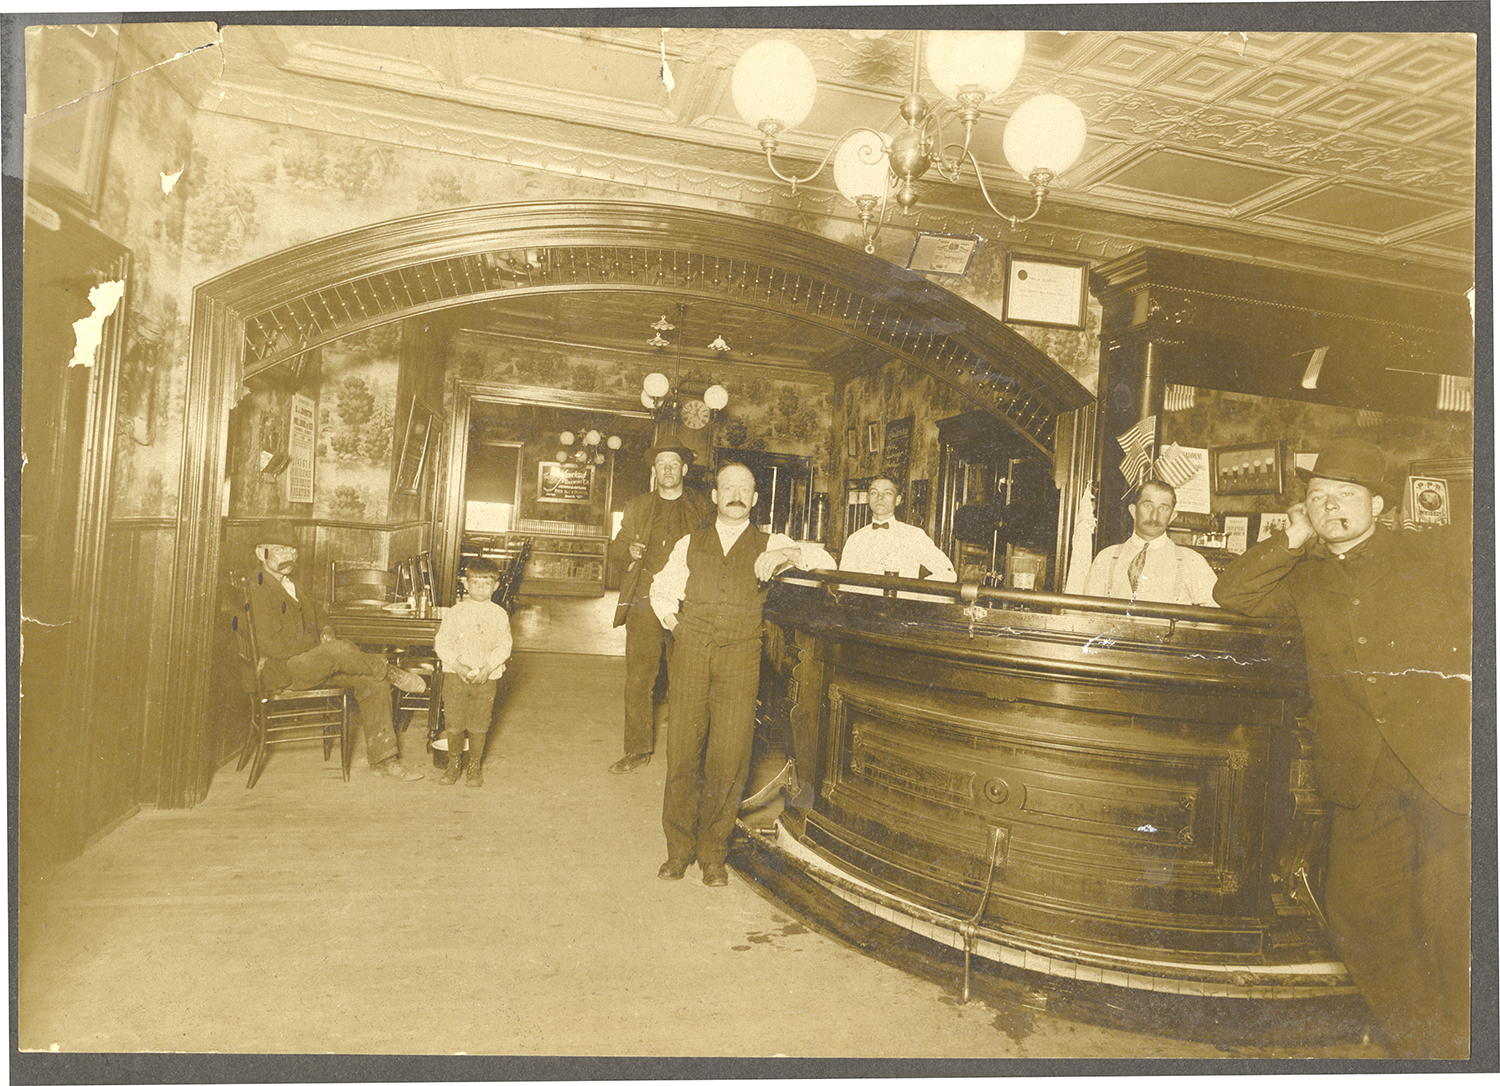 Interior of a South Side saloon, c. 1900. Detre Library & Archives, Heinz History Center.